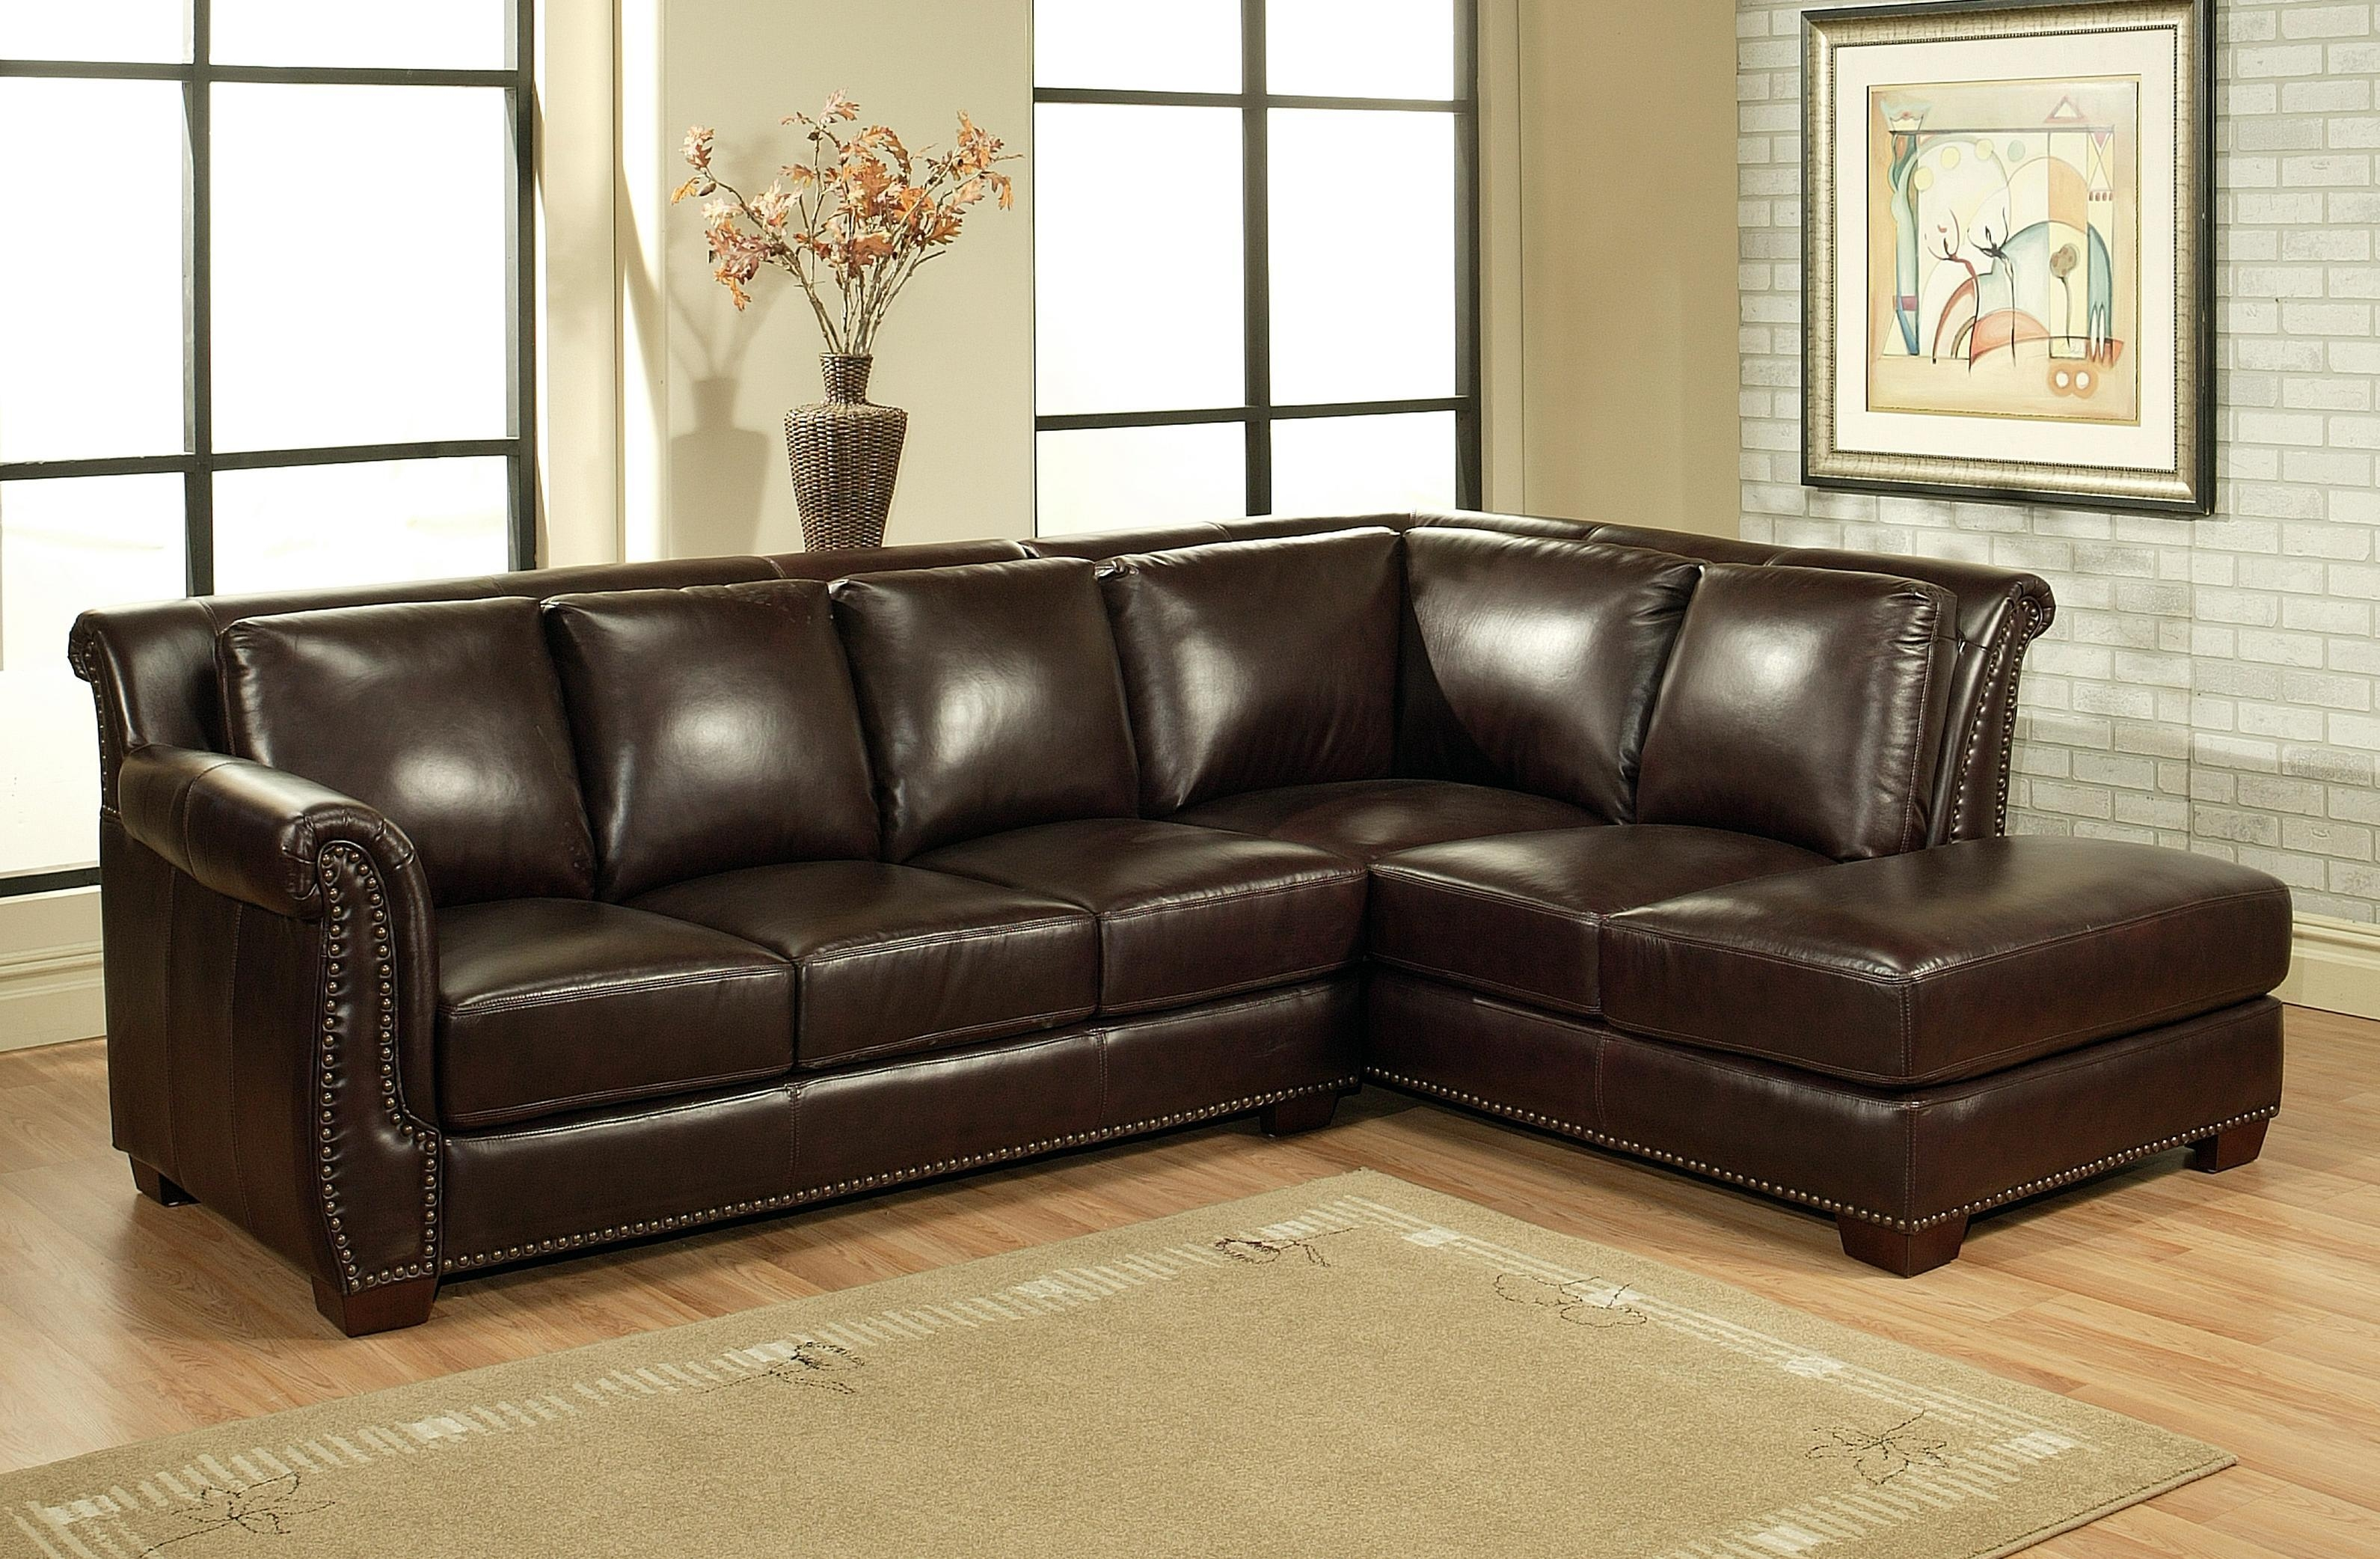 Sofas : Marvelous Small Leather Sofa Luxury Leather Sofas Leather For Leather Sofa Sectionals For Sale (Image 20 of 20)